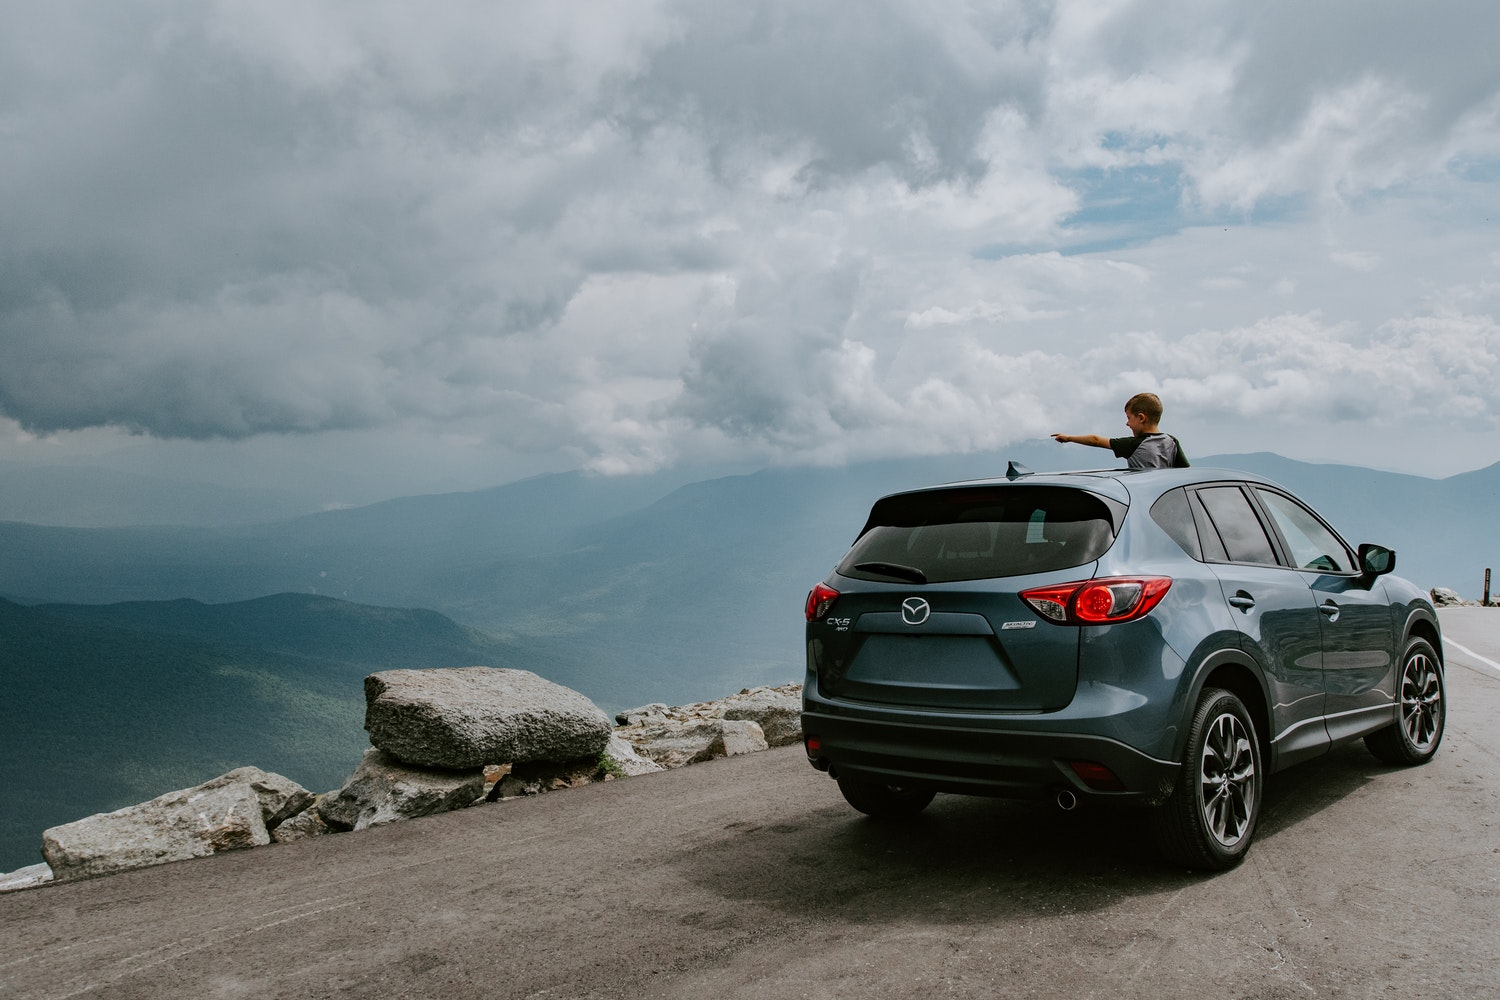 Choosing The Right Vehicle for Your Family